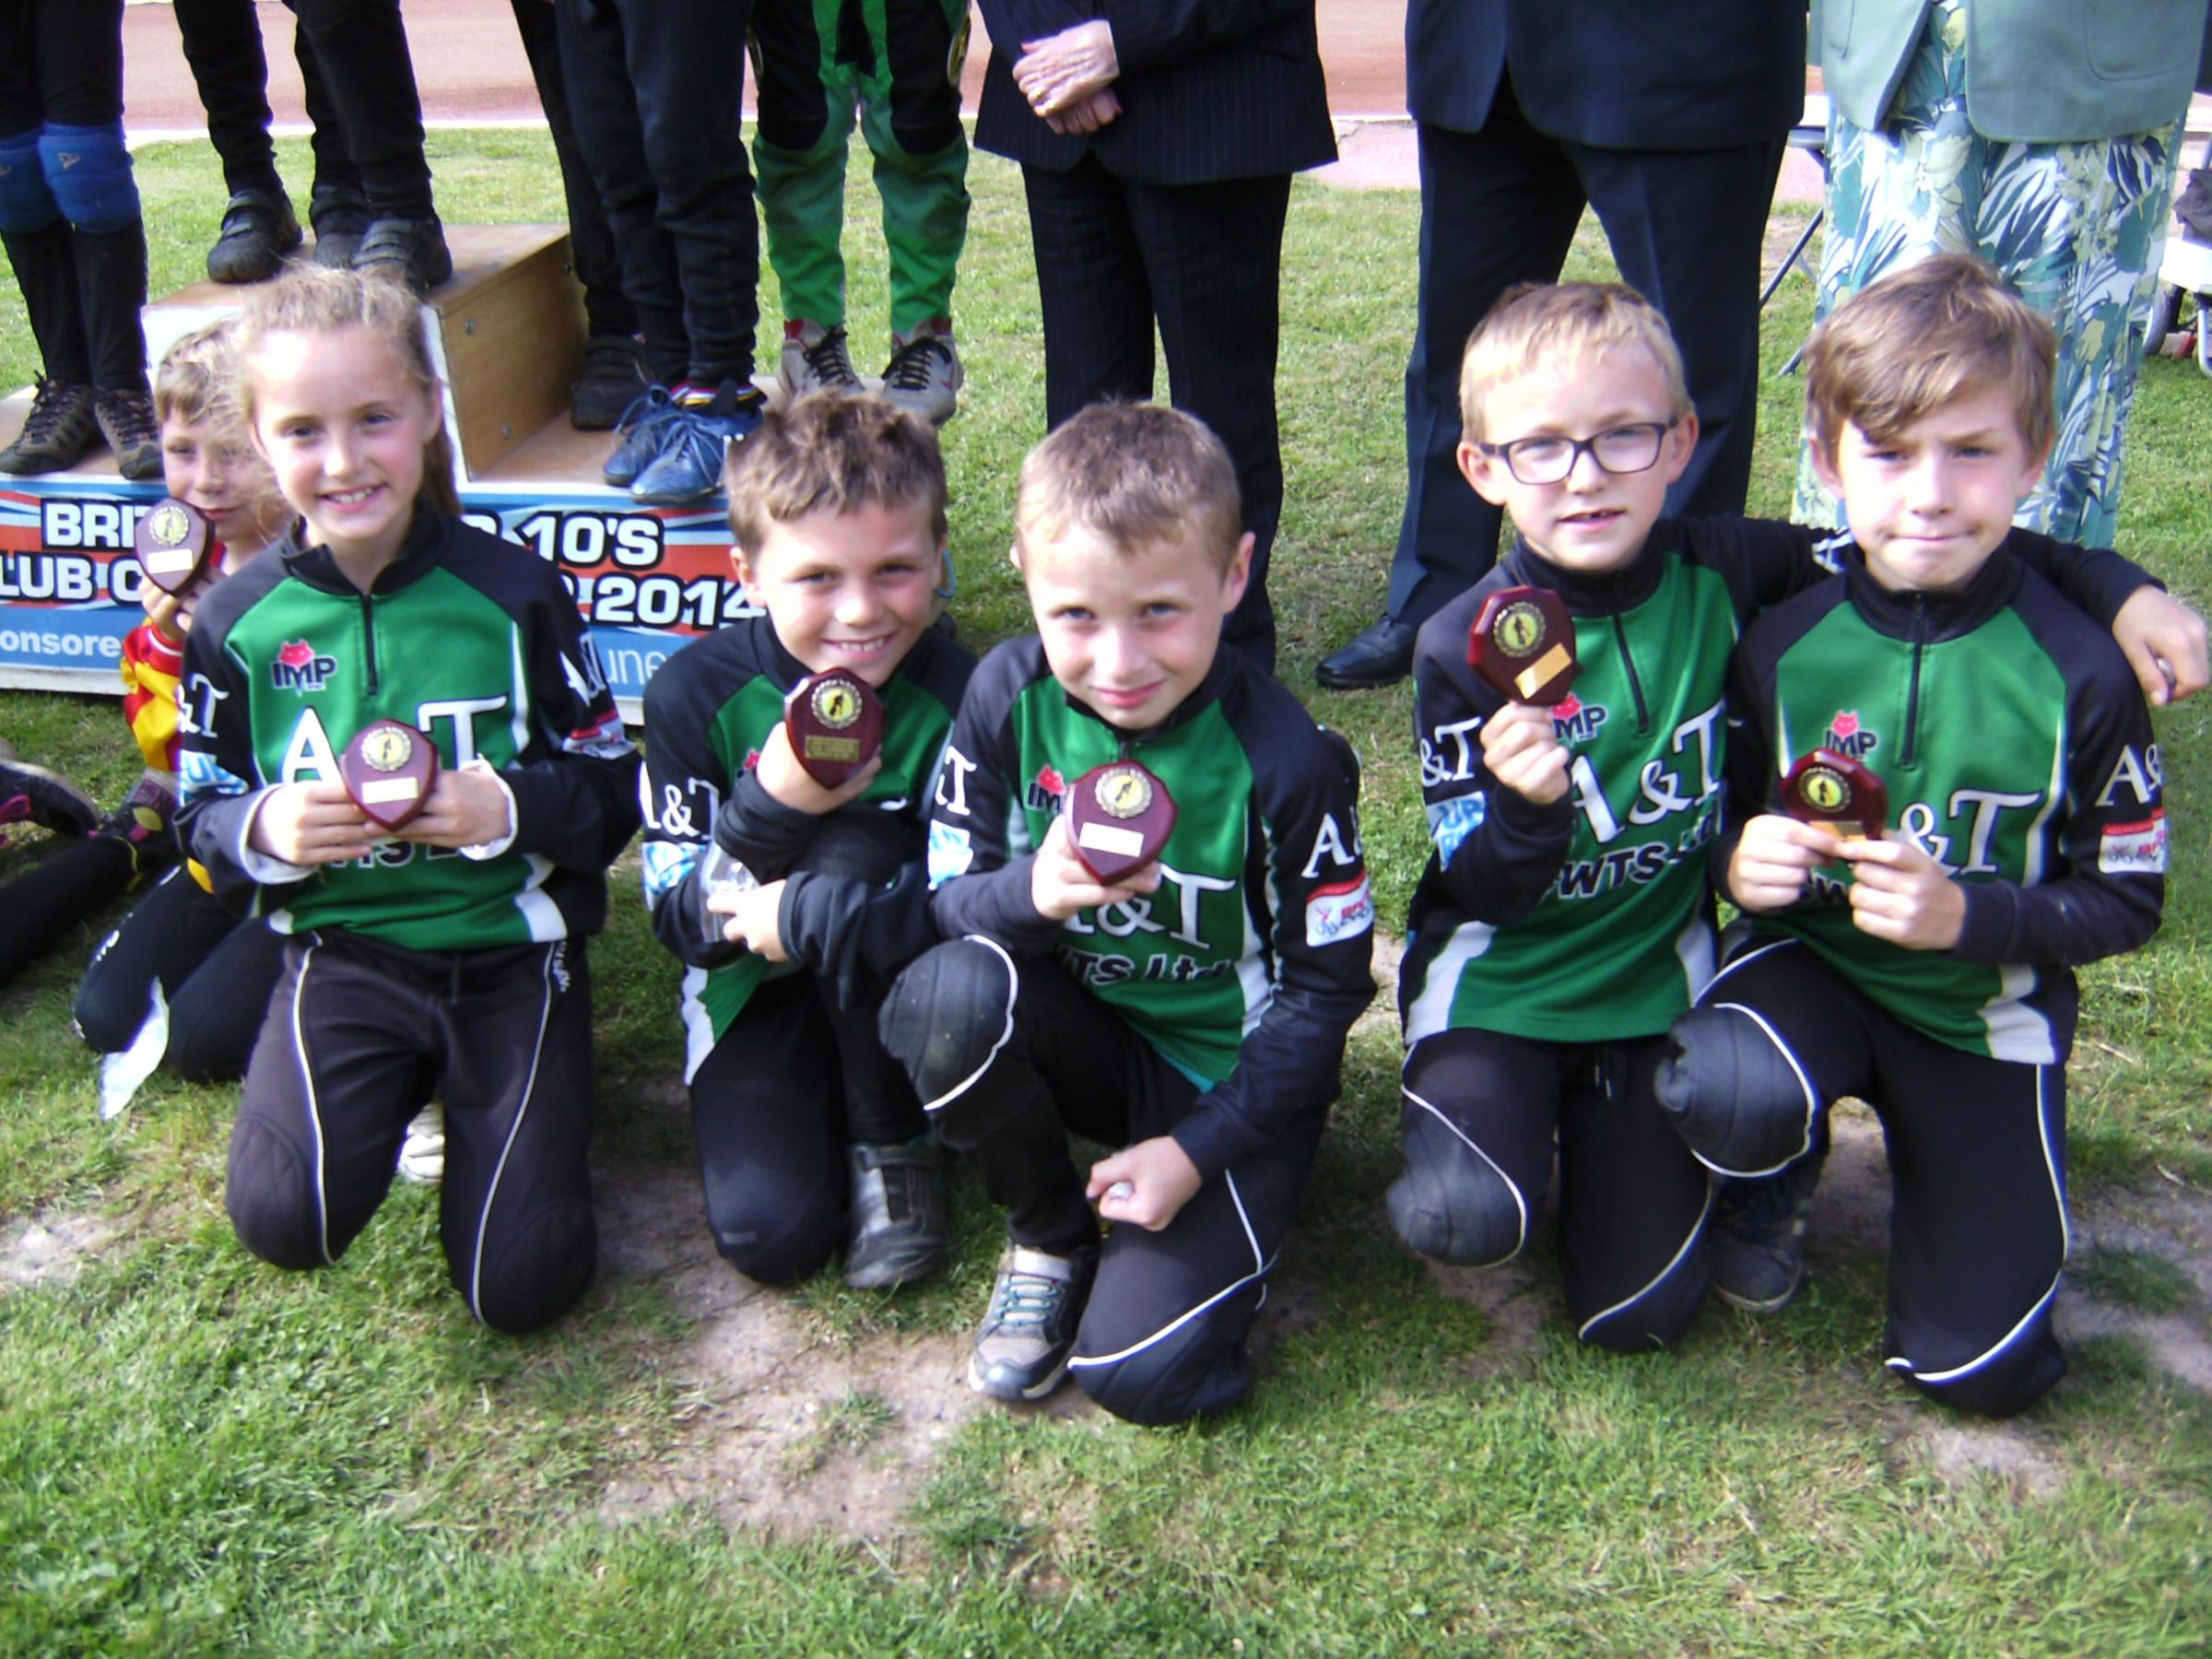 The under 10s with their British Club Championship runner-up awards. Photo Mike Hack.